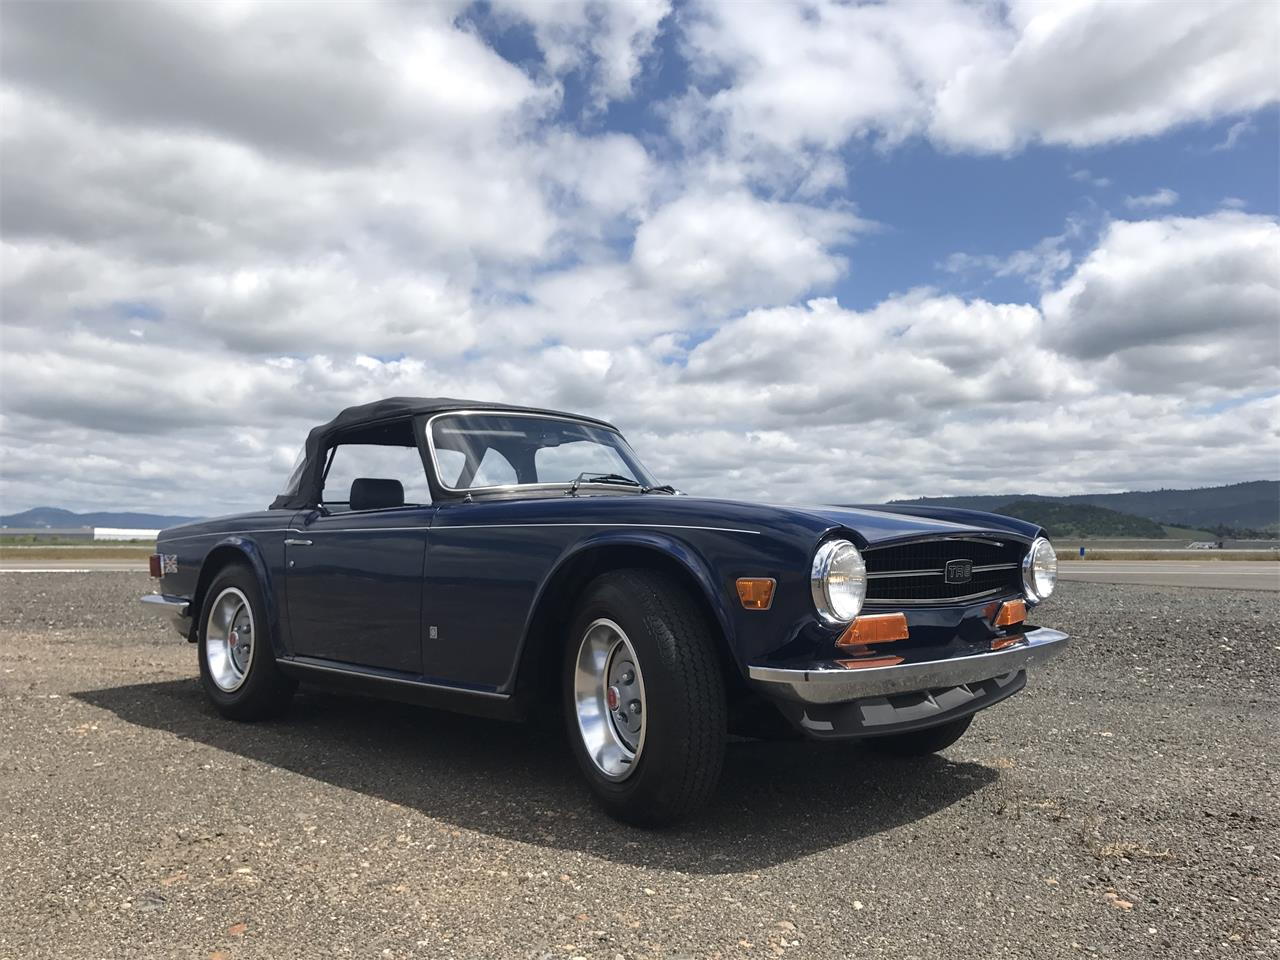 1973 Triumph TR6 for sale in Medford, OR